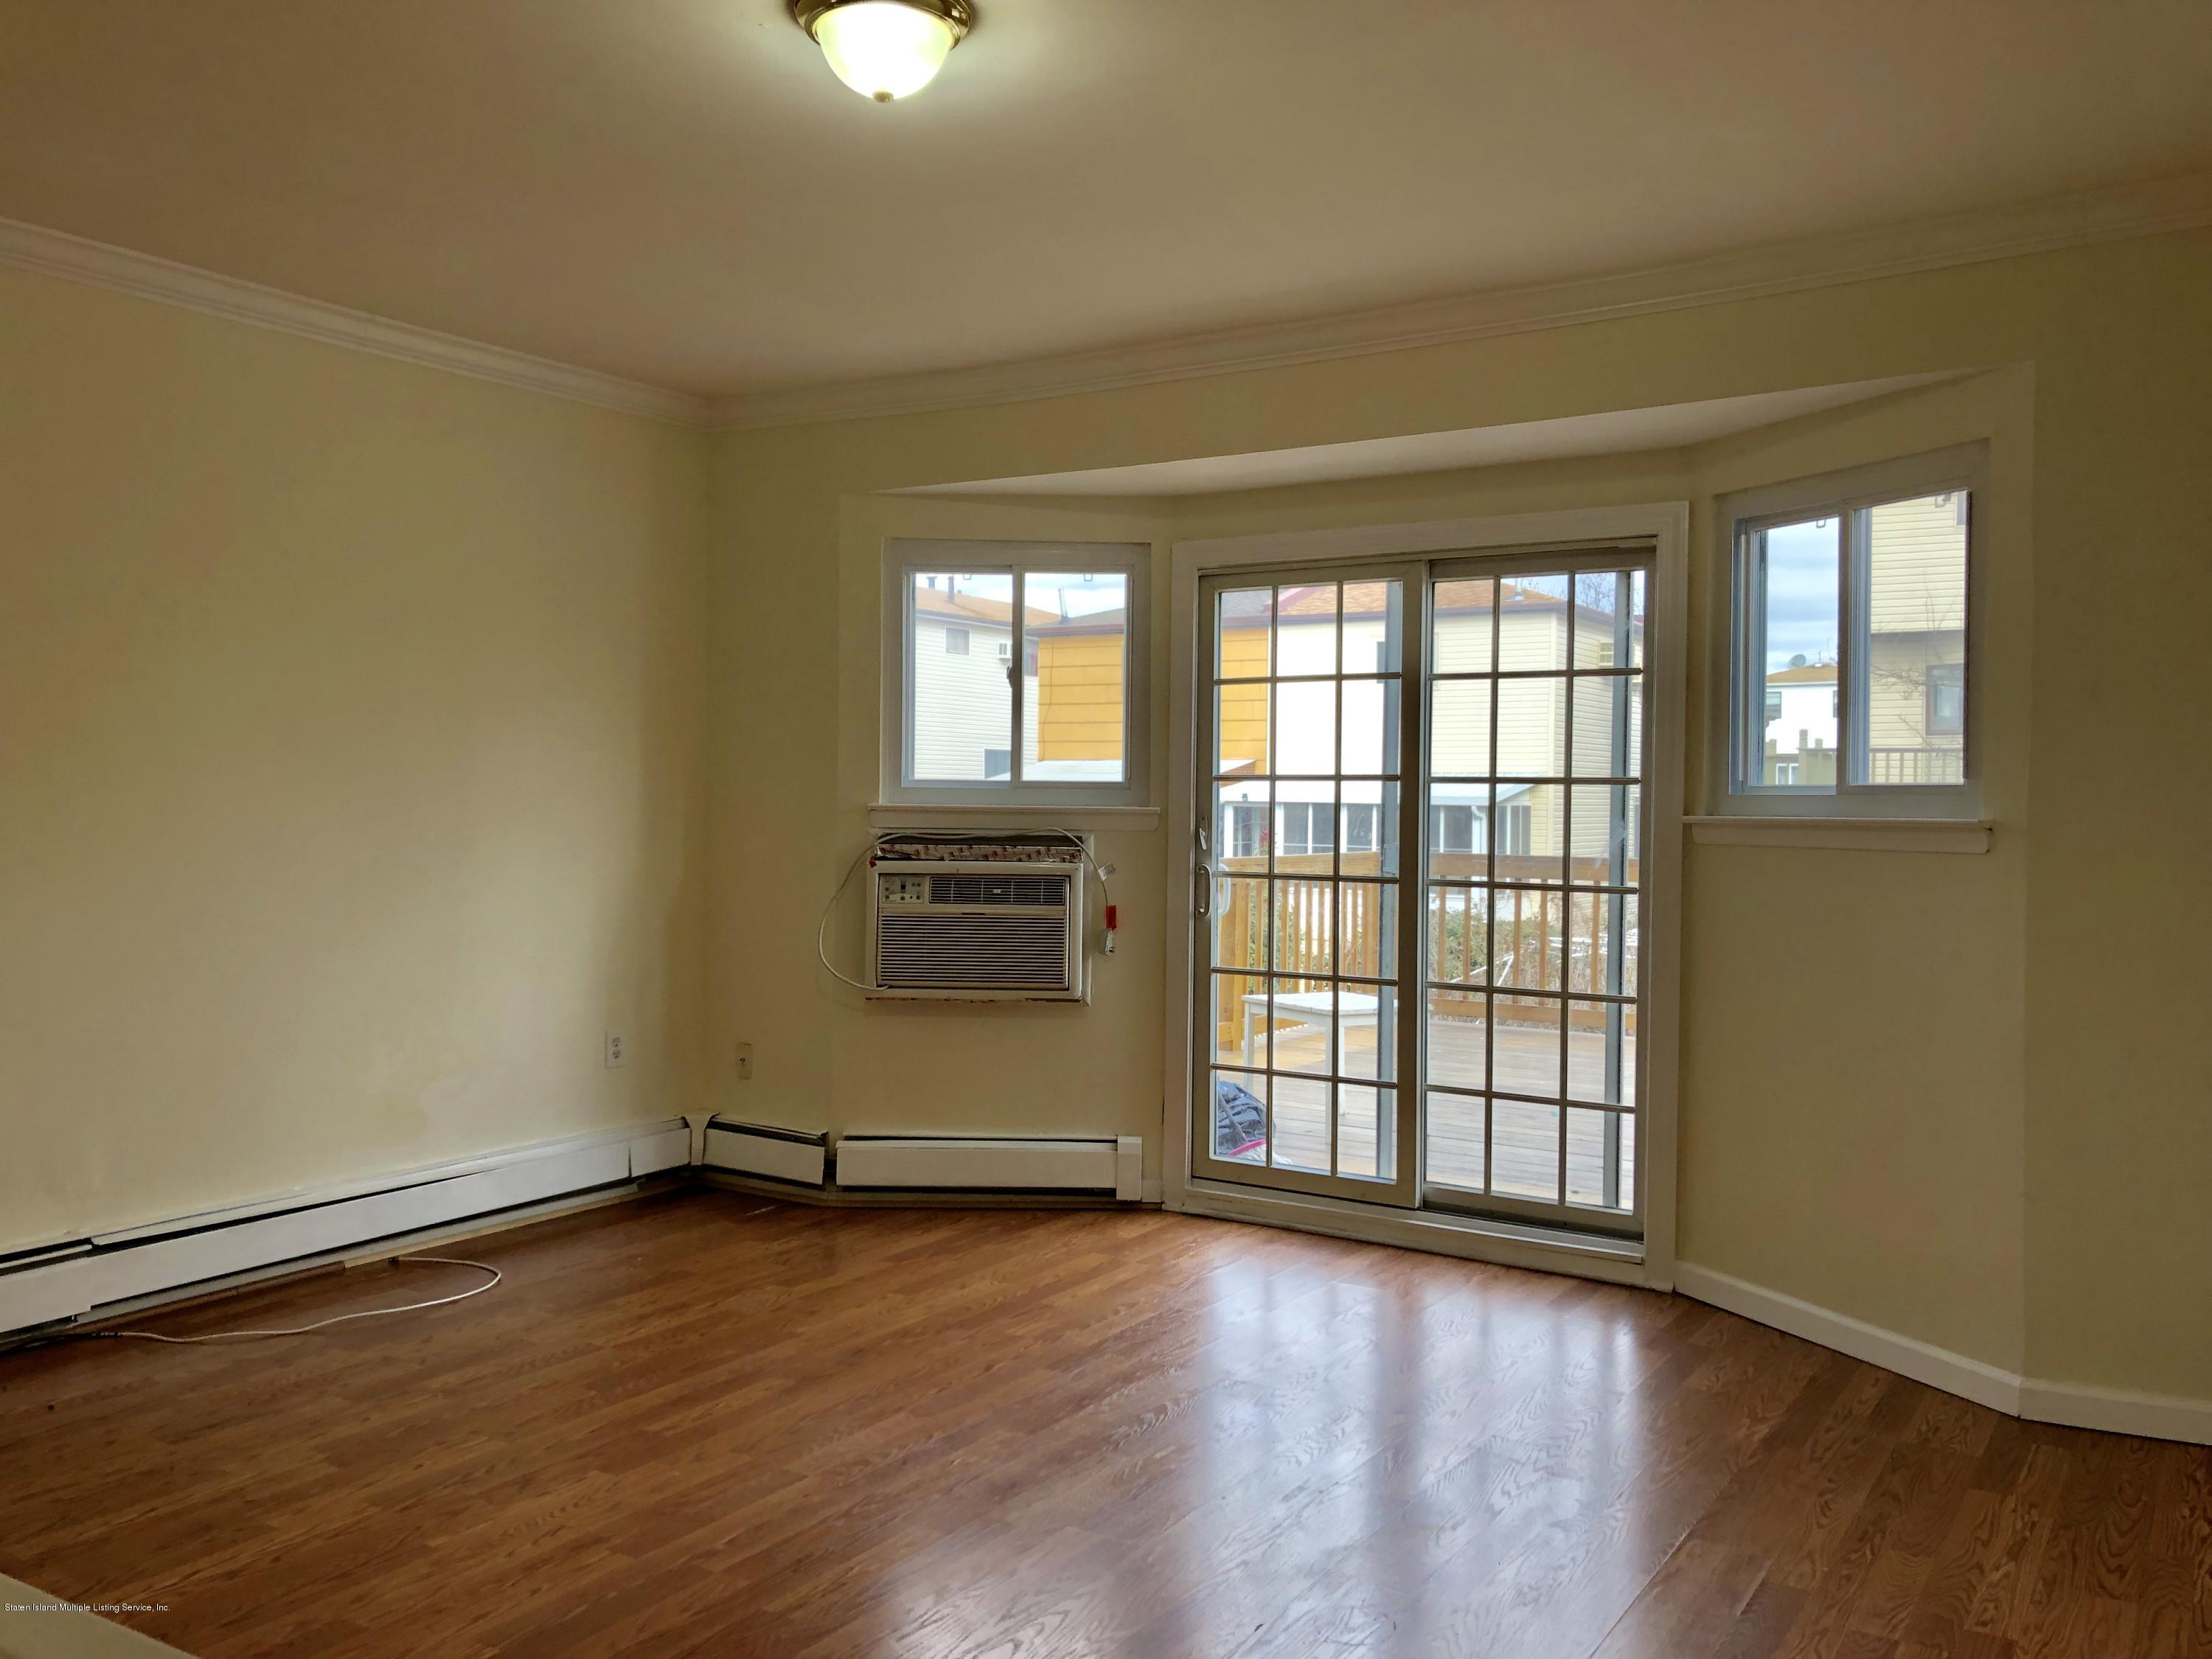 Single Family - Semi-Attached 205 Mcveigh Avenue  Staten Island, NY 10314, MLS-1123847-8